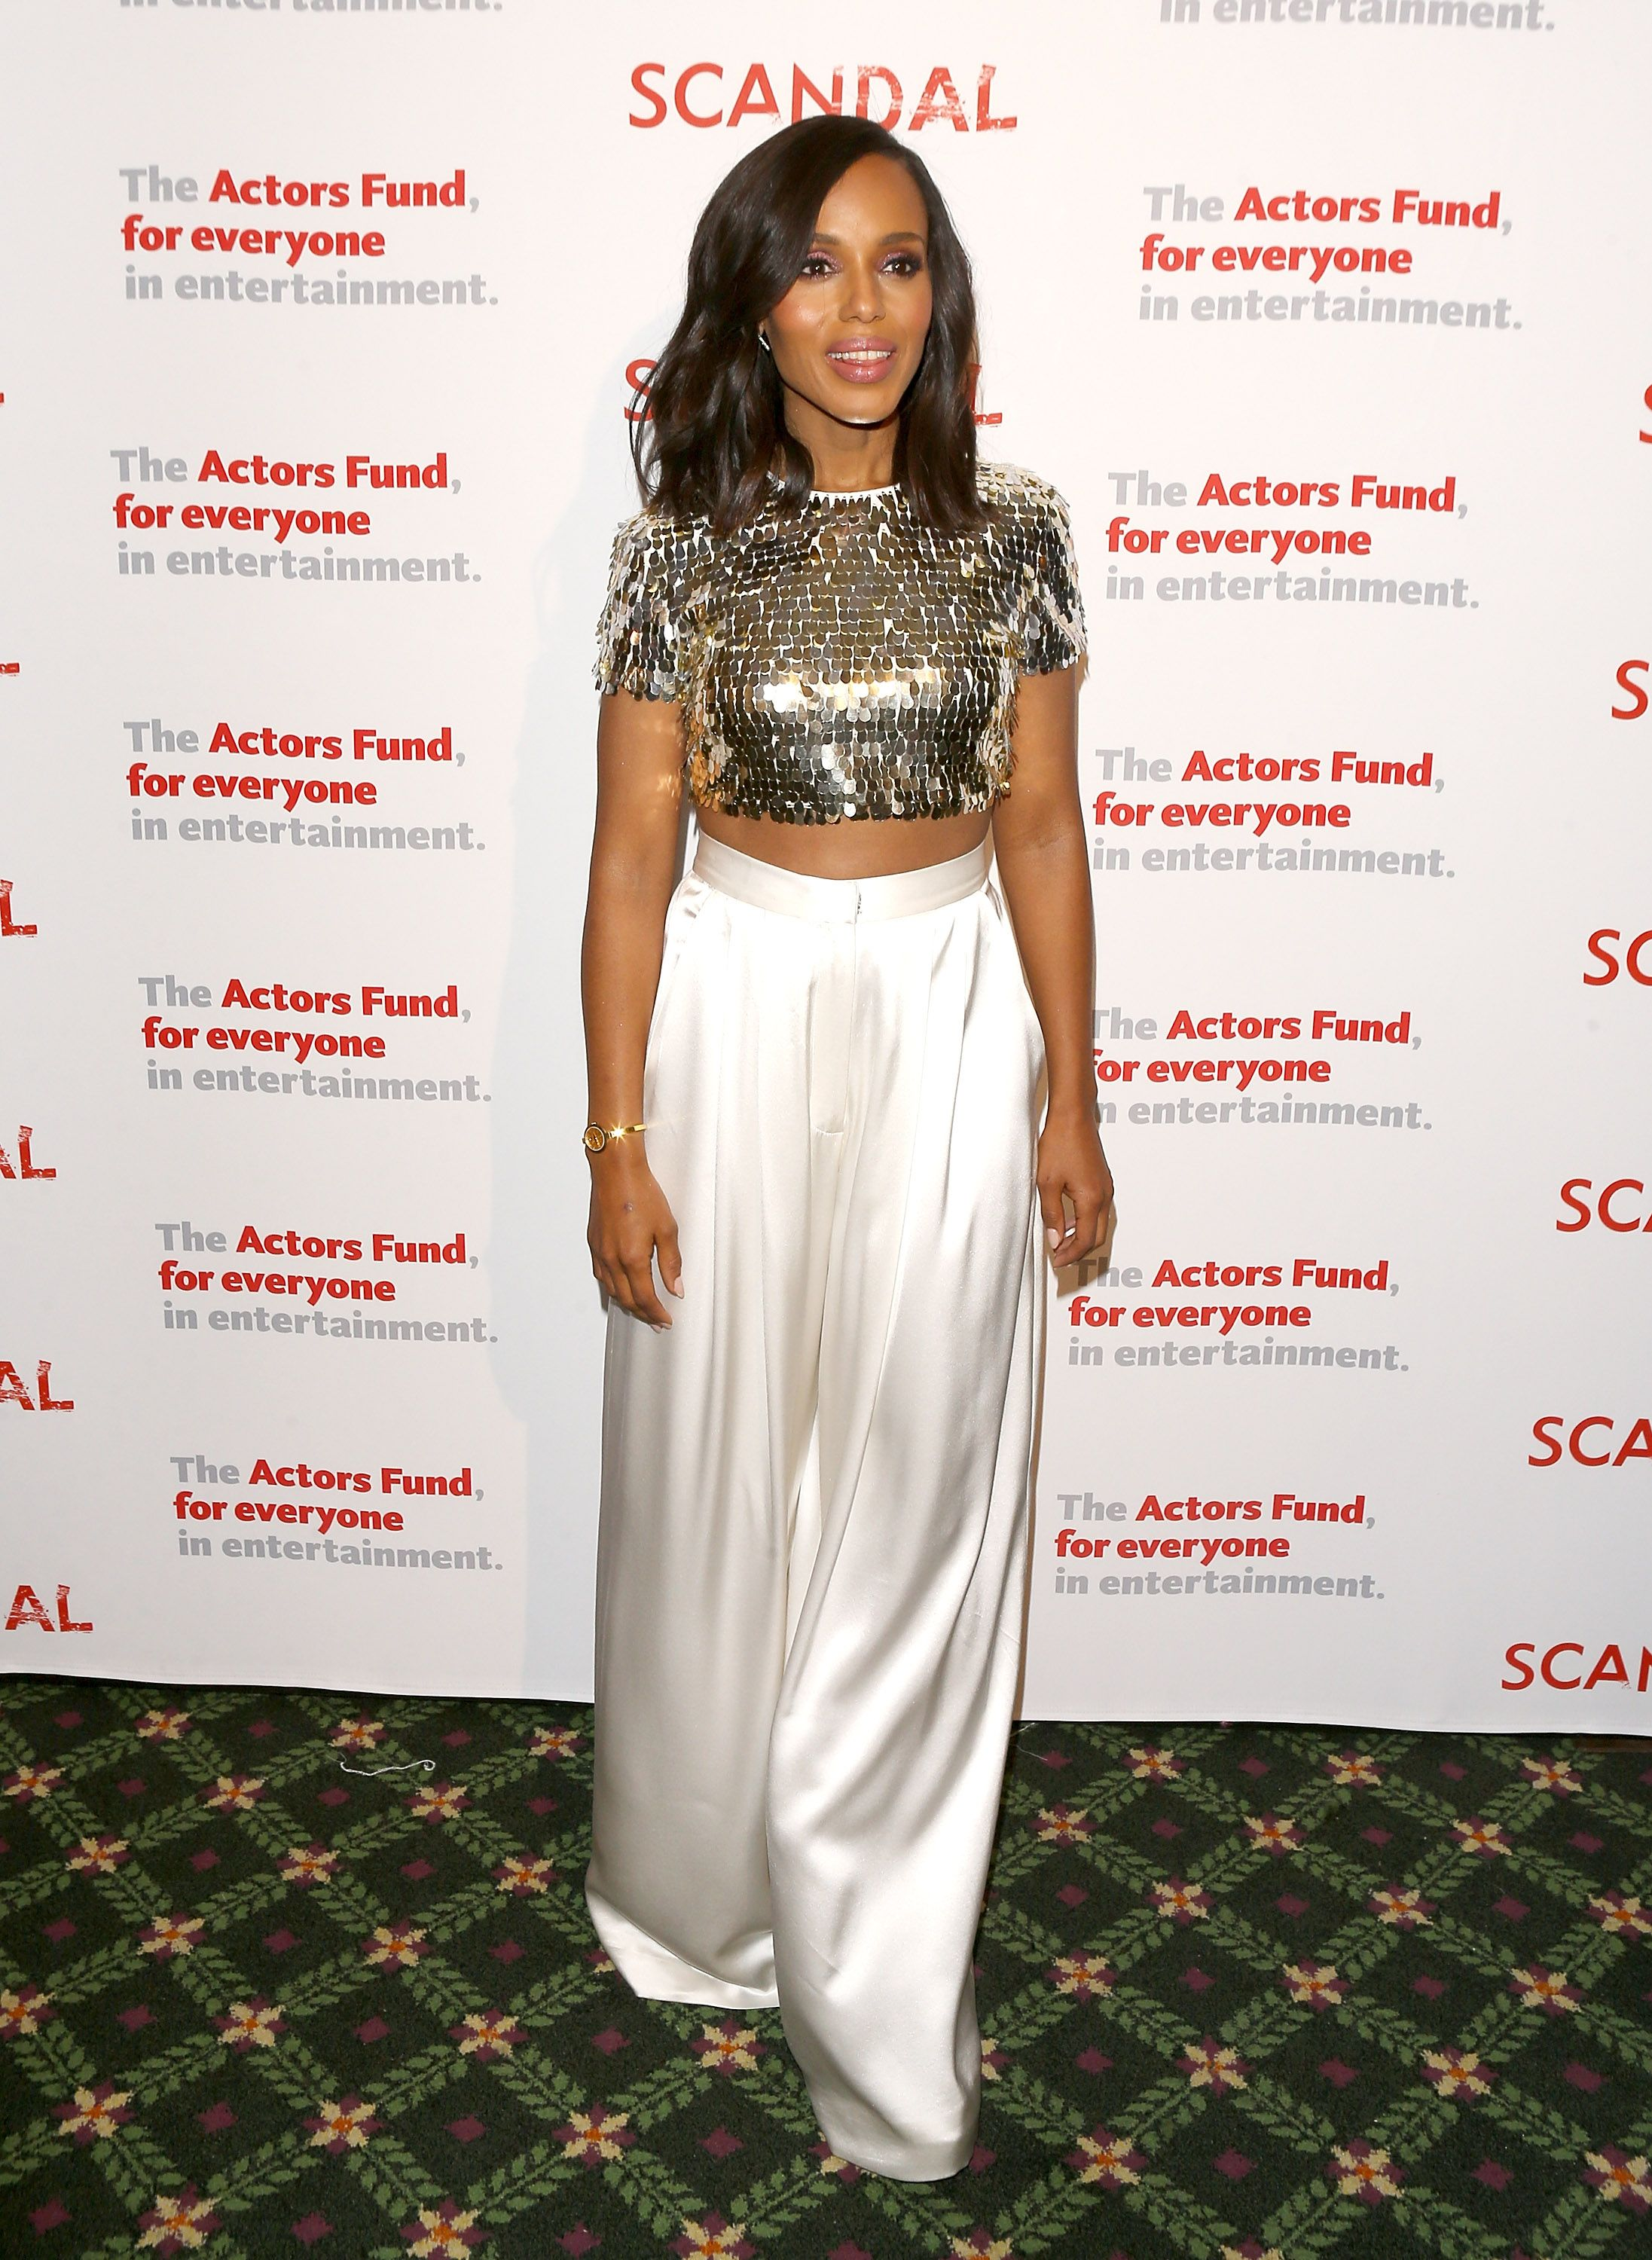 Kerry Washington arrives to the Scandal live stage reading of series finale to Benefit The Actors Fund held at El Capitan Theatre on April 19, 2018 in Los Angeles, California. | Source: Getty Images